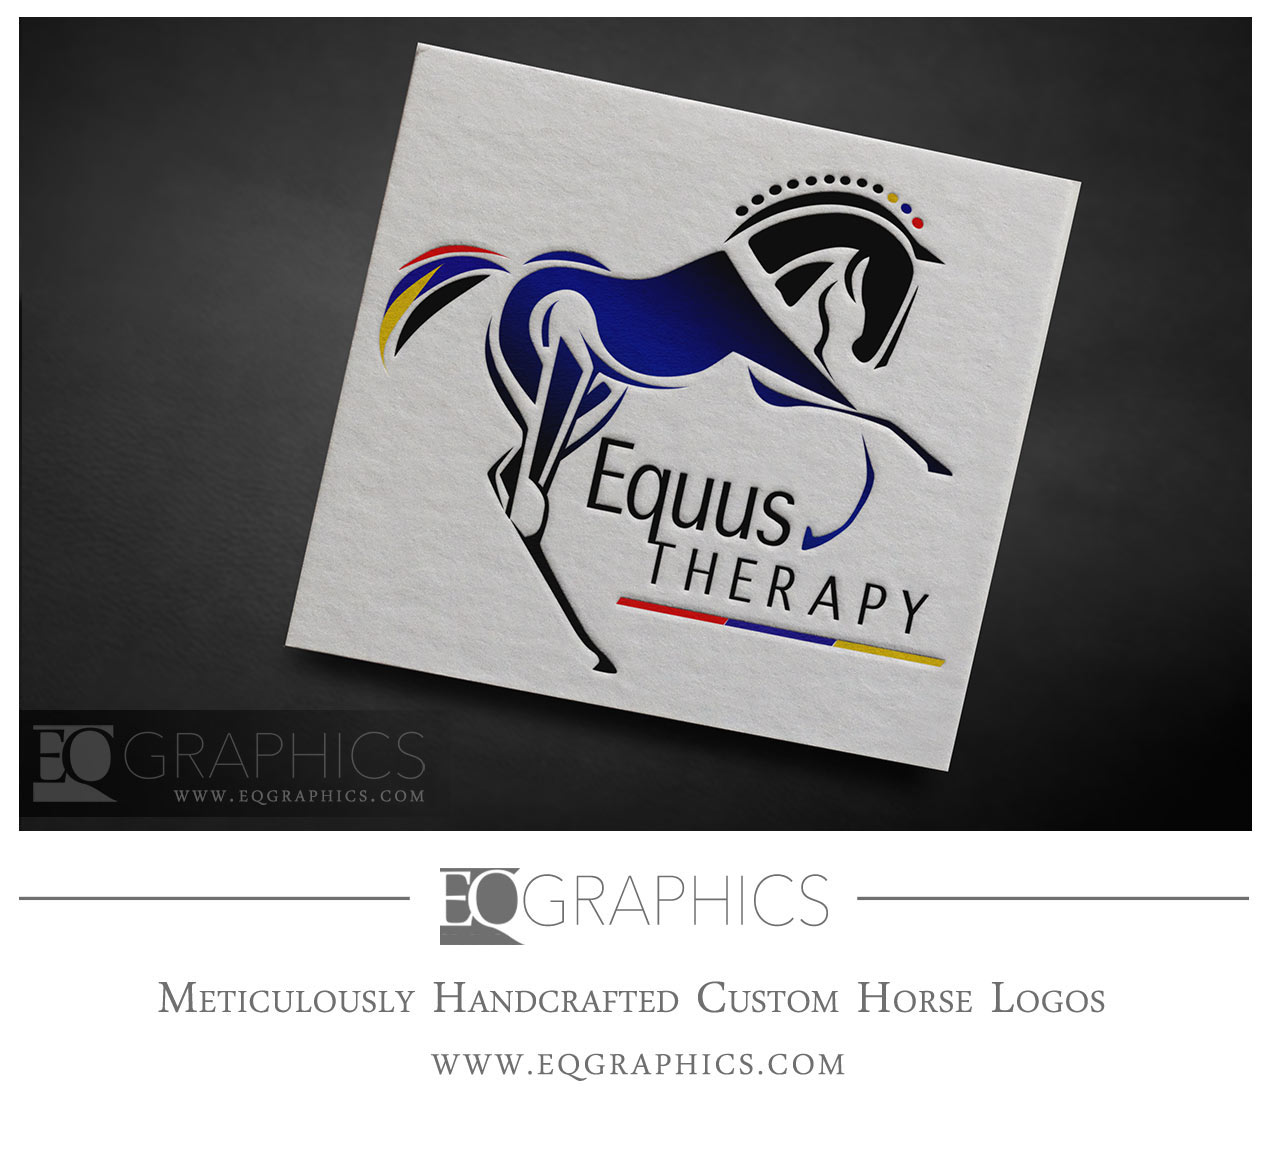 Equus Therapy Veterinary Rehabilitation Logo Design by EQ Graphics Horse Logos